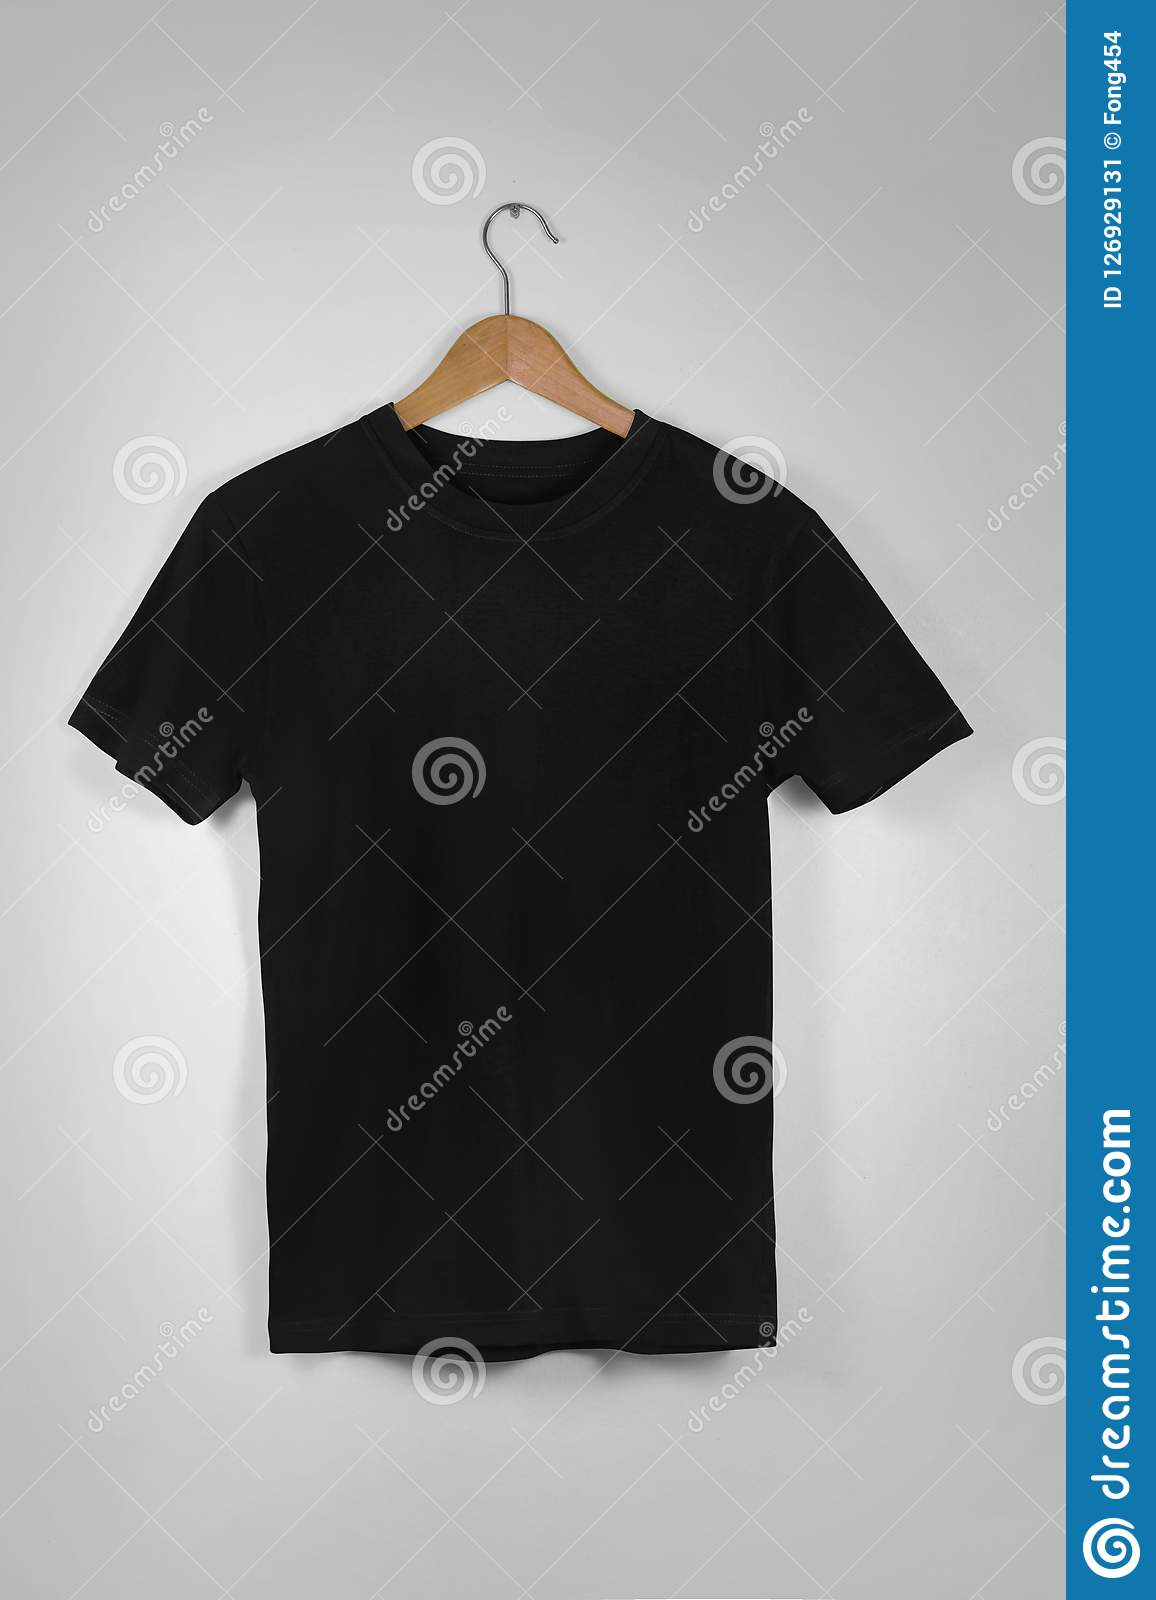 Black Blank Cotton Tshirt Hanging Center Gray Concrete Empty Wall Background with clipping path